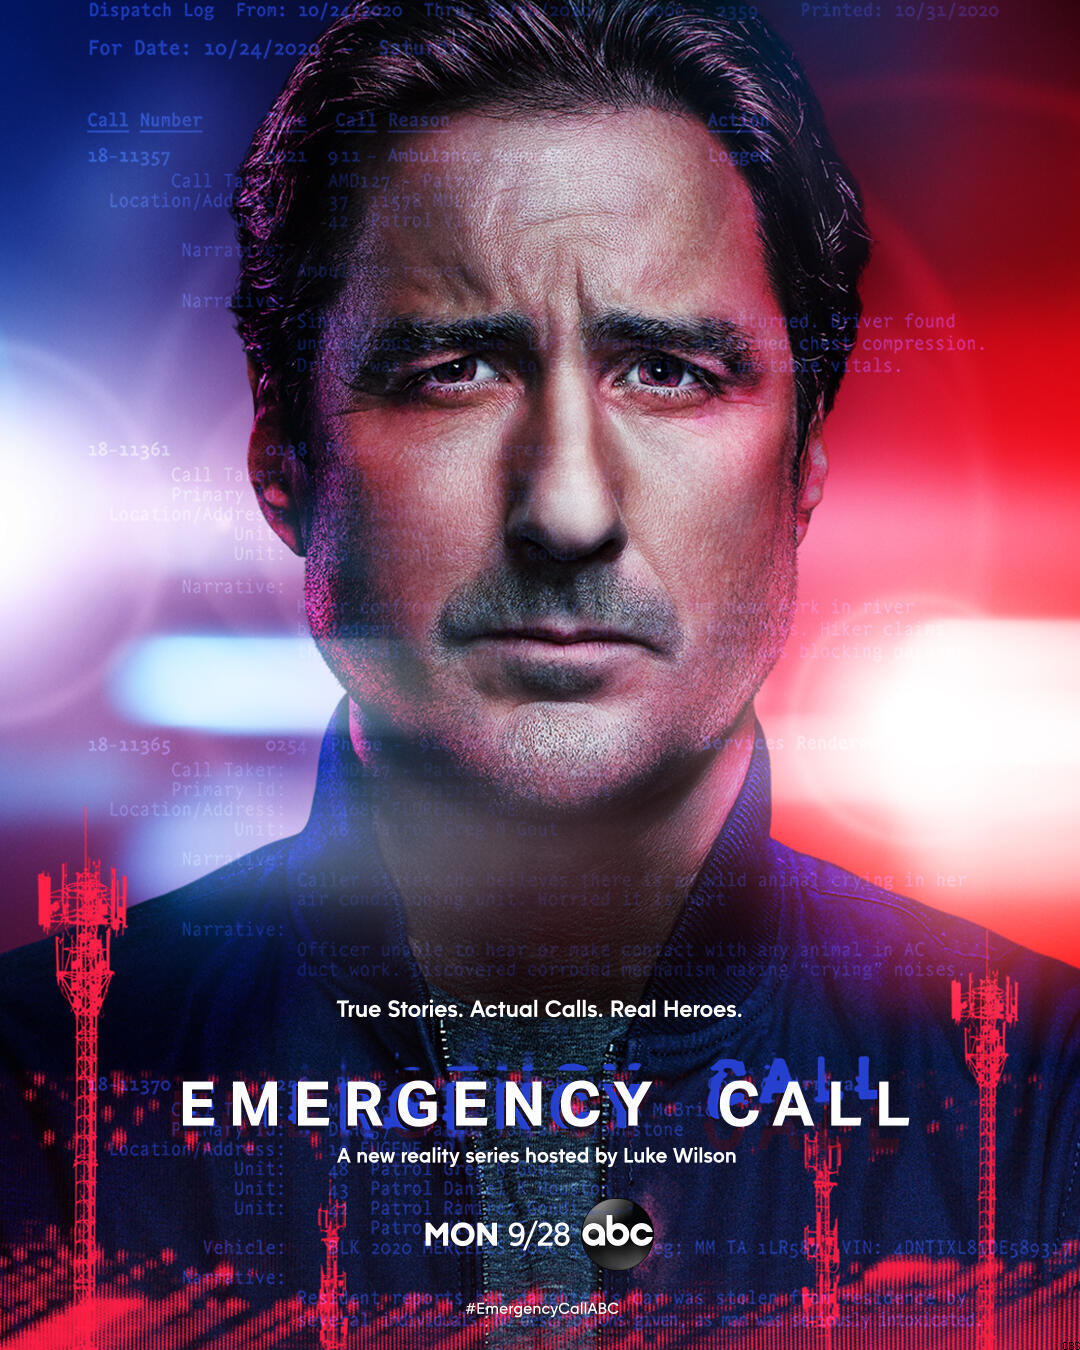 Emergency Call (US) Season 1 Episode 5 - Headset Heroes